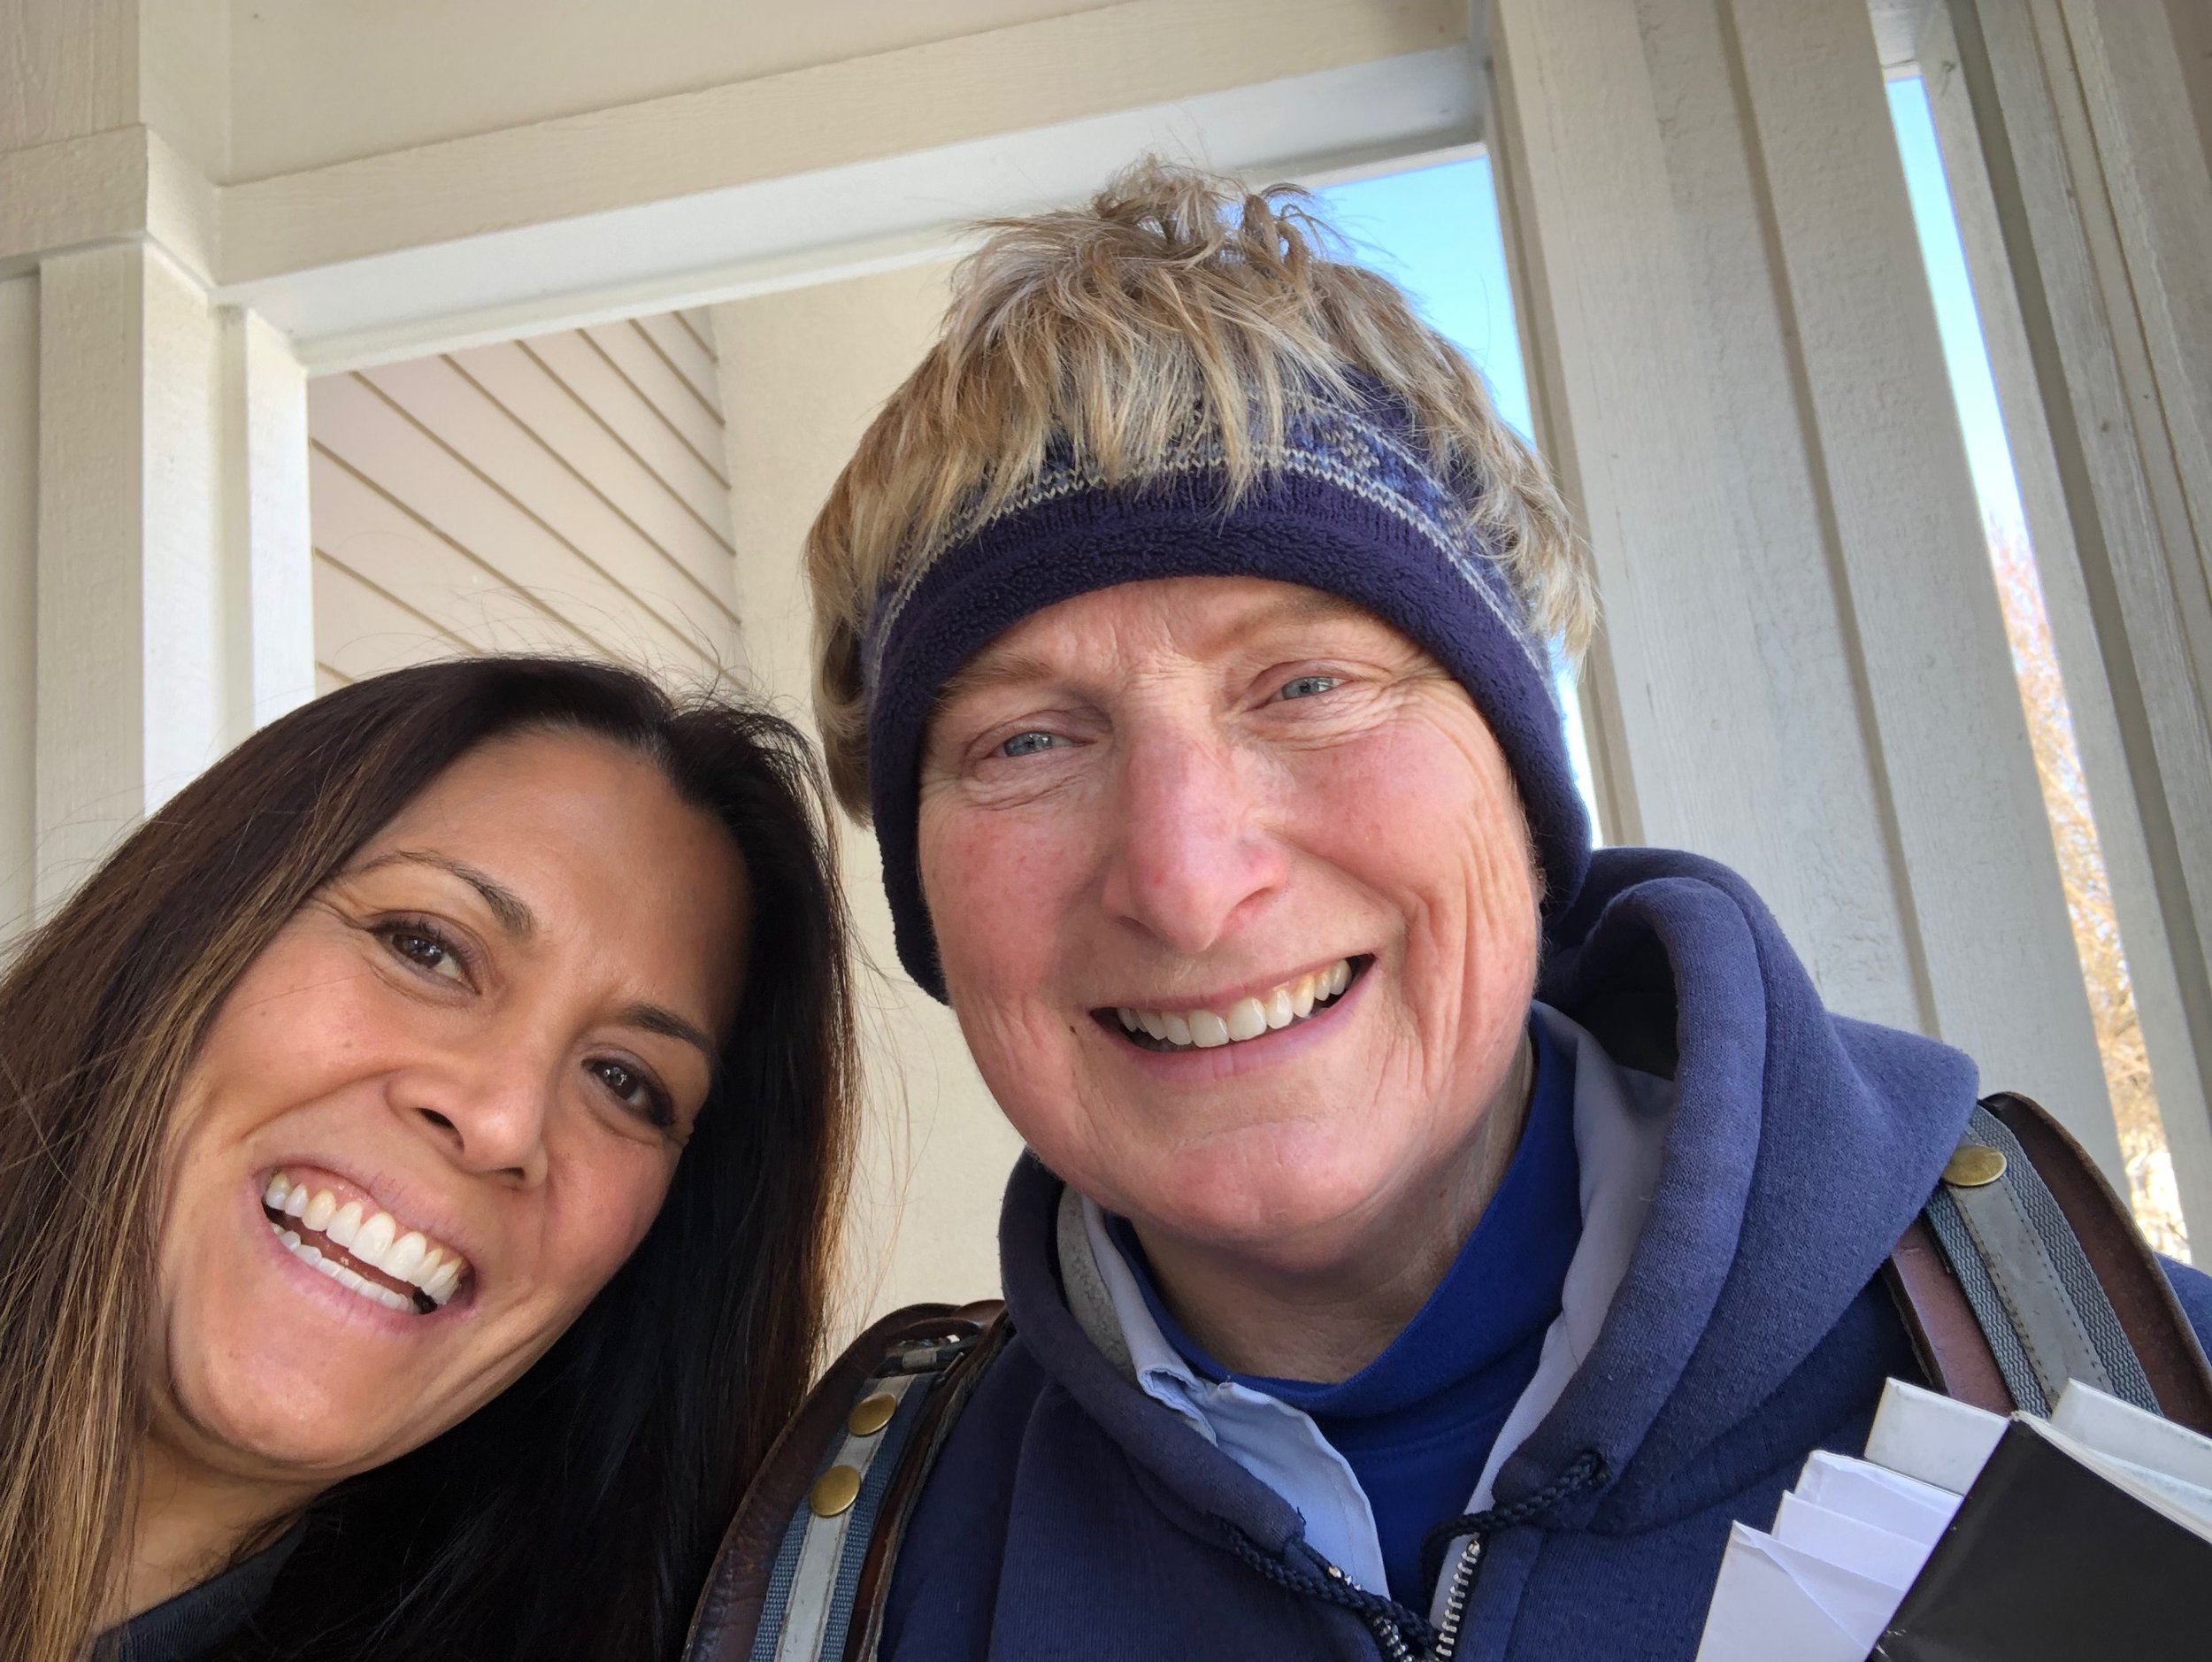 Instagram Message: She's the BEST mail carrier in the country! Check the blog. Thank a Mail Carrier day is coming up!